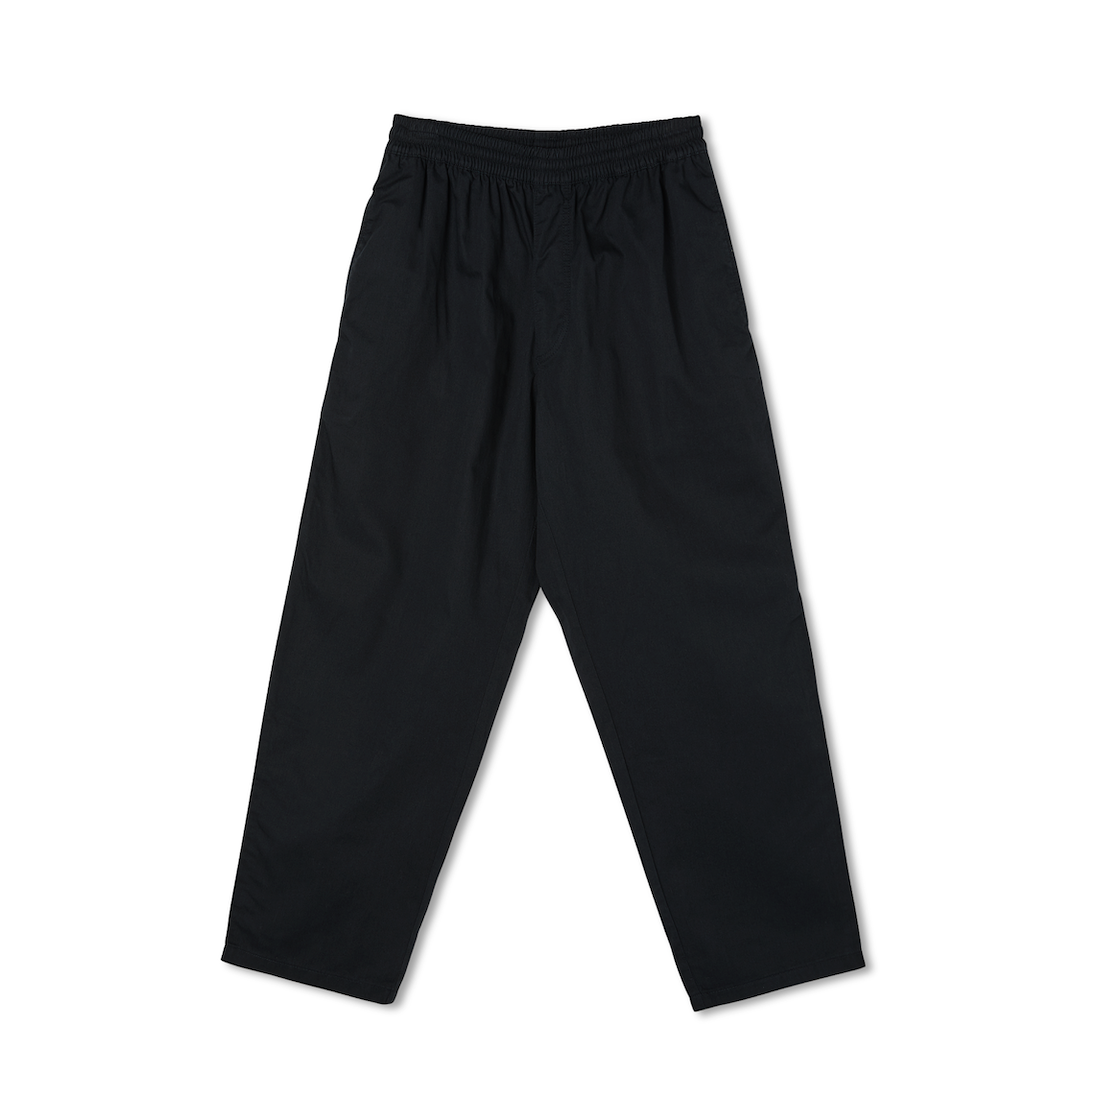 【POLAR SKATE CO.】Surf Pants - Black